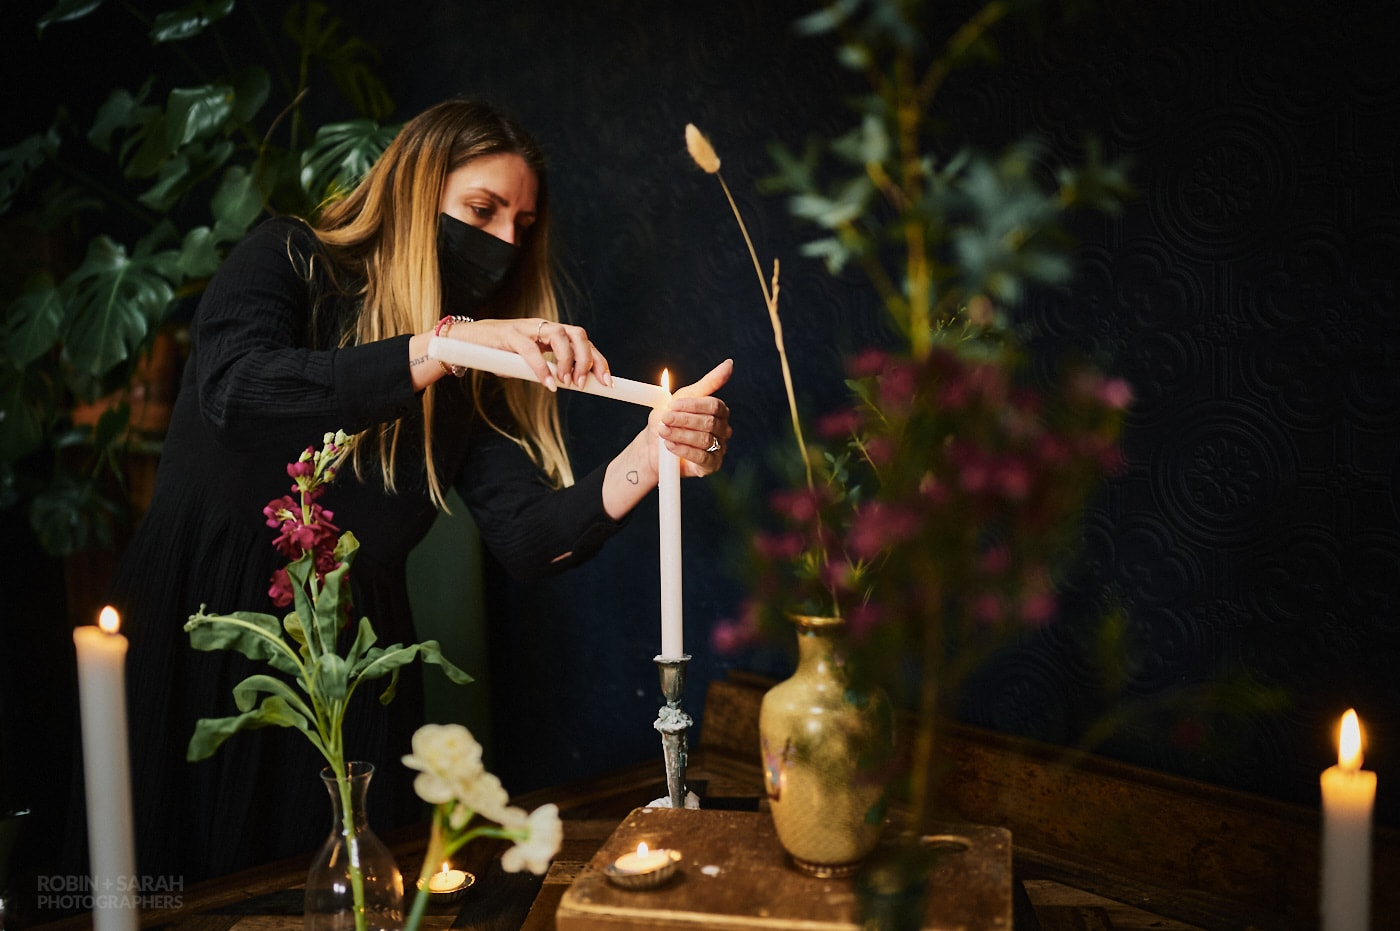 Staff light candles for wedding ceremony at The Chimney House